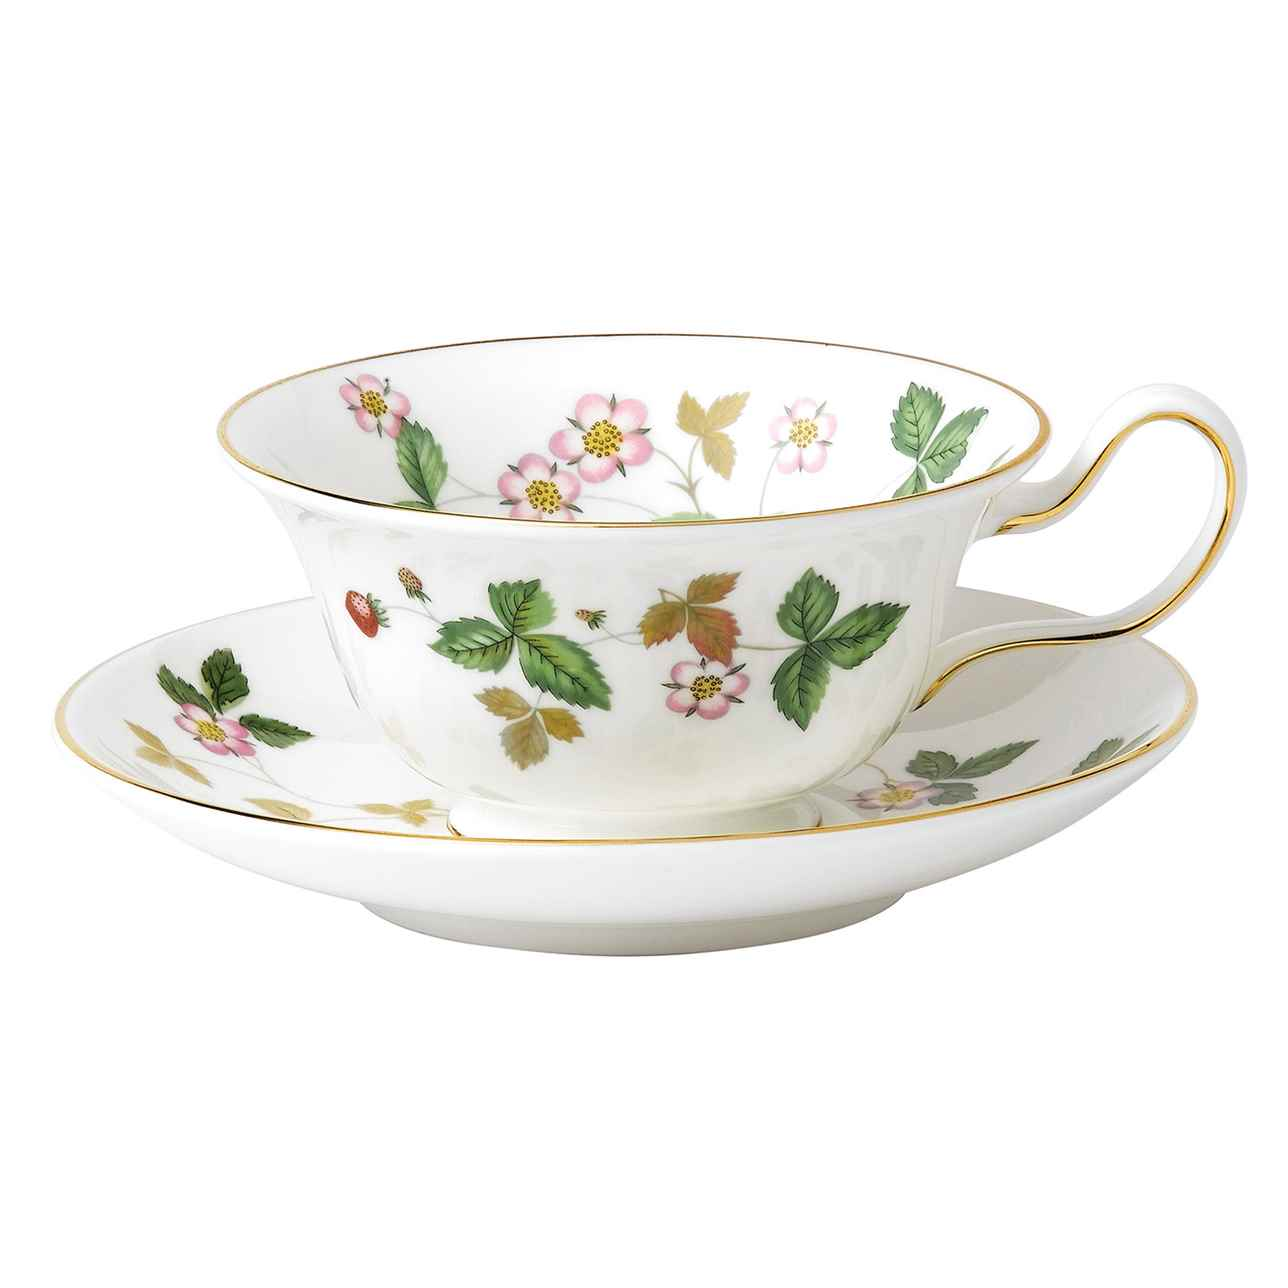 Wild Strawberry Peony Teacup and Saucer, Gift Boxed